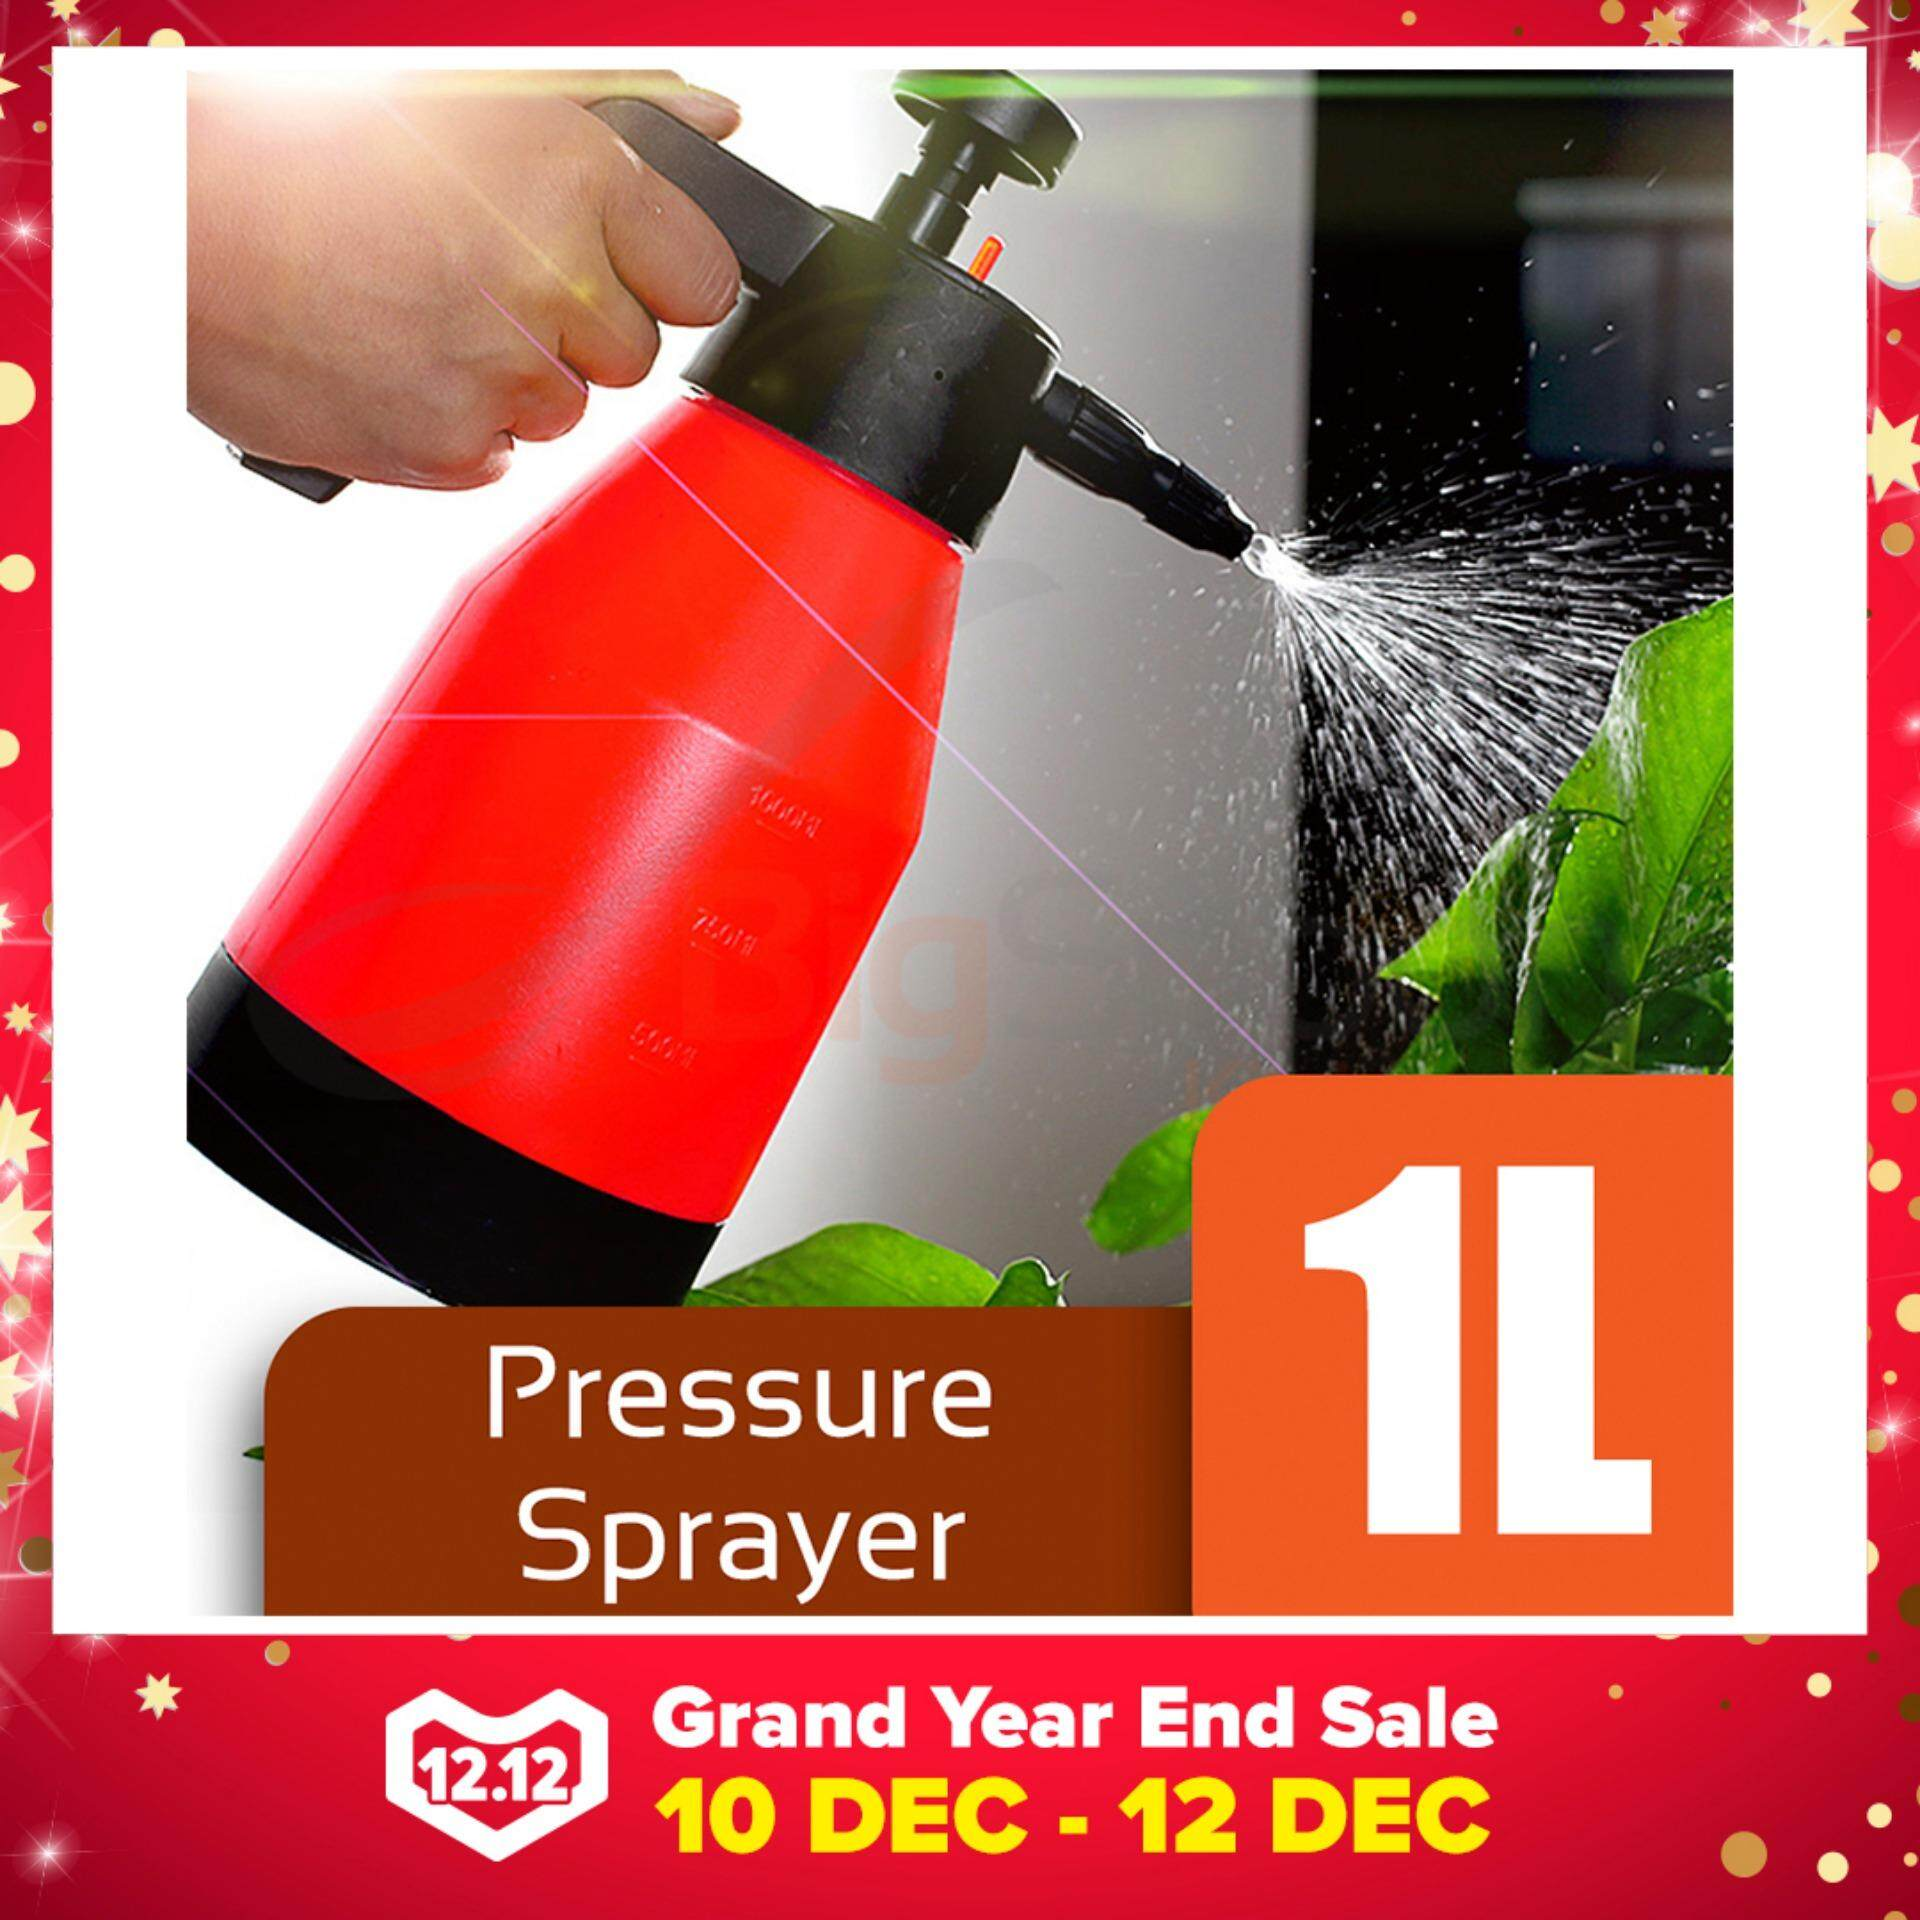 BIGSPOON Garden Pressure Sprayer 1L Hand Pump Water Chemical Handheld Spray Bottle SX-5079-10 (Red)